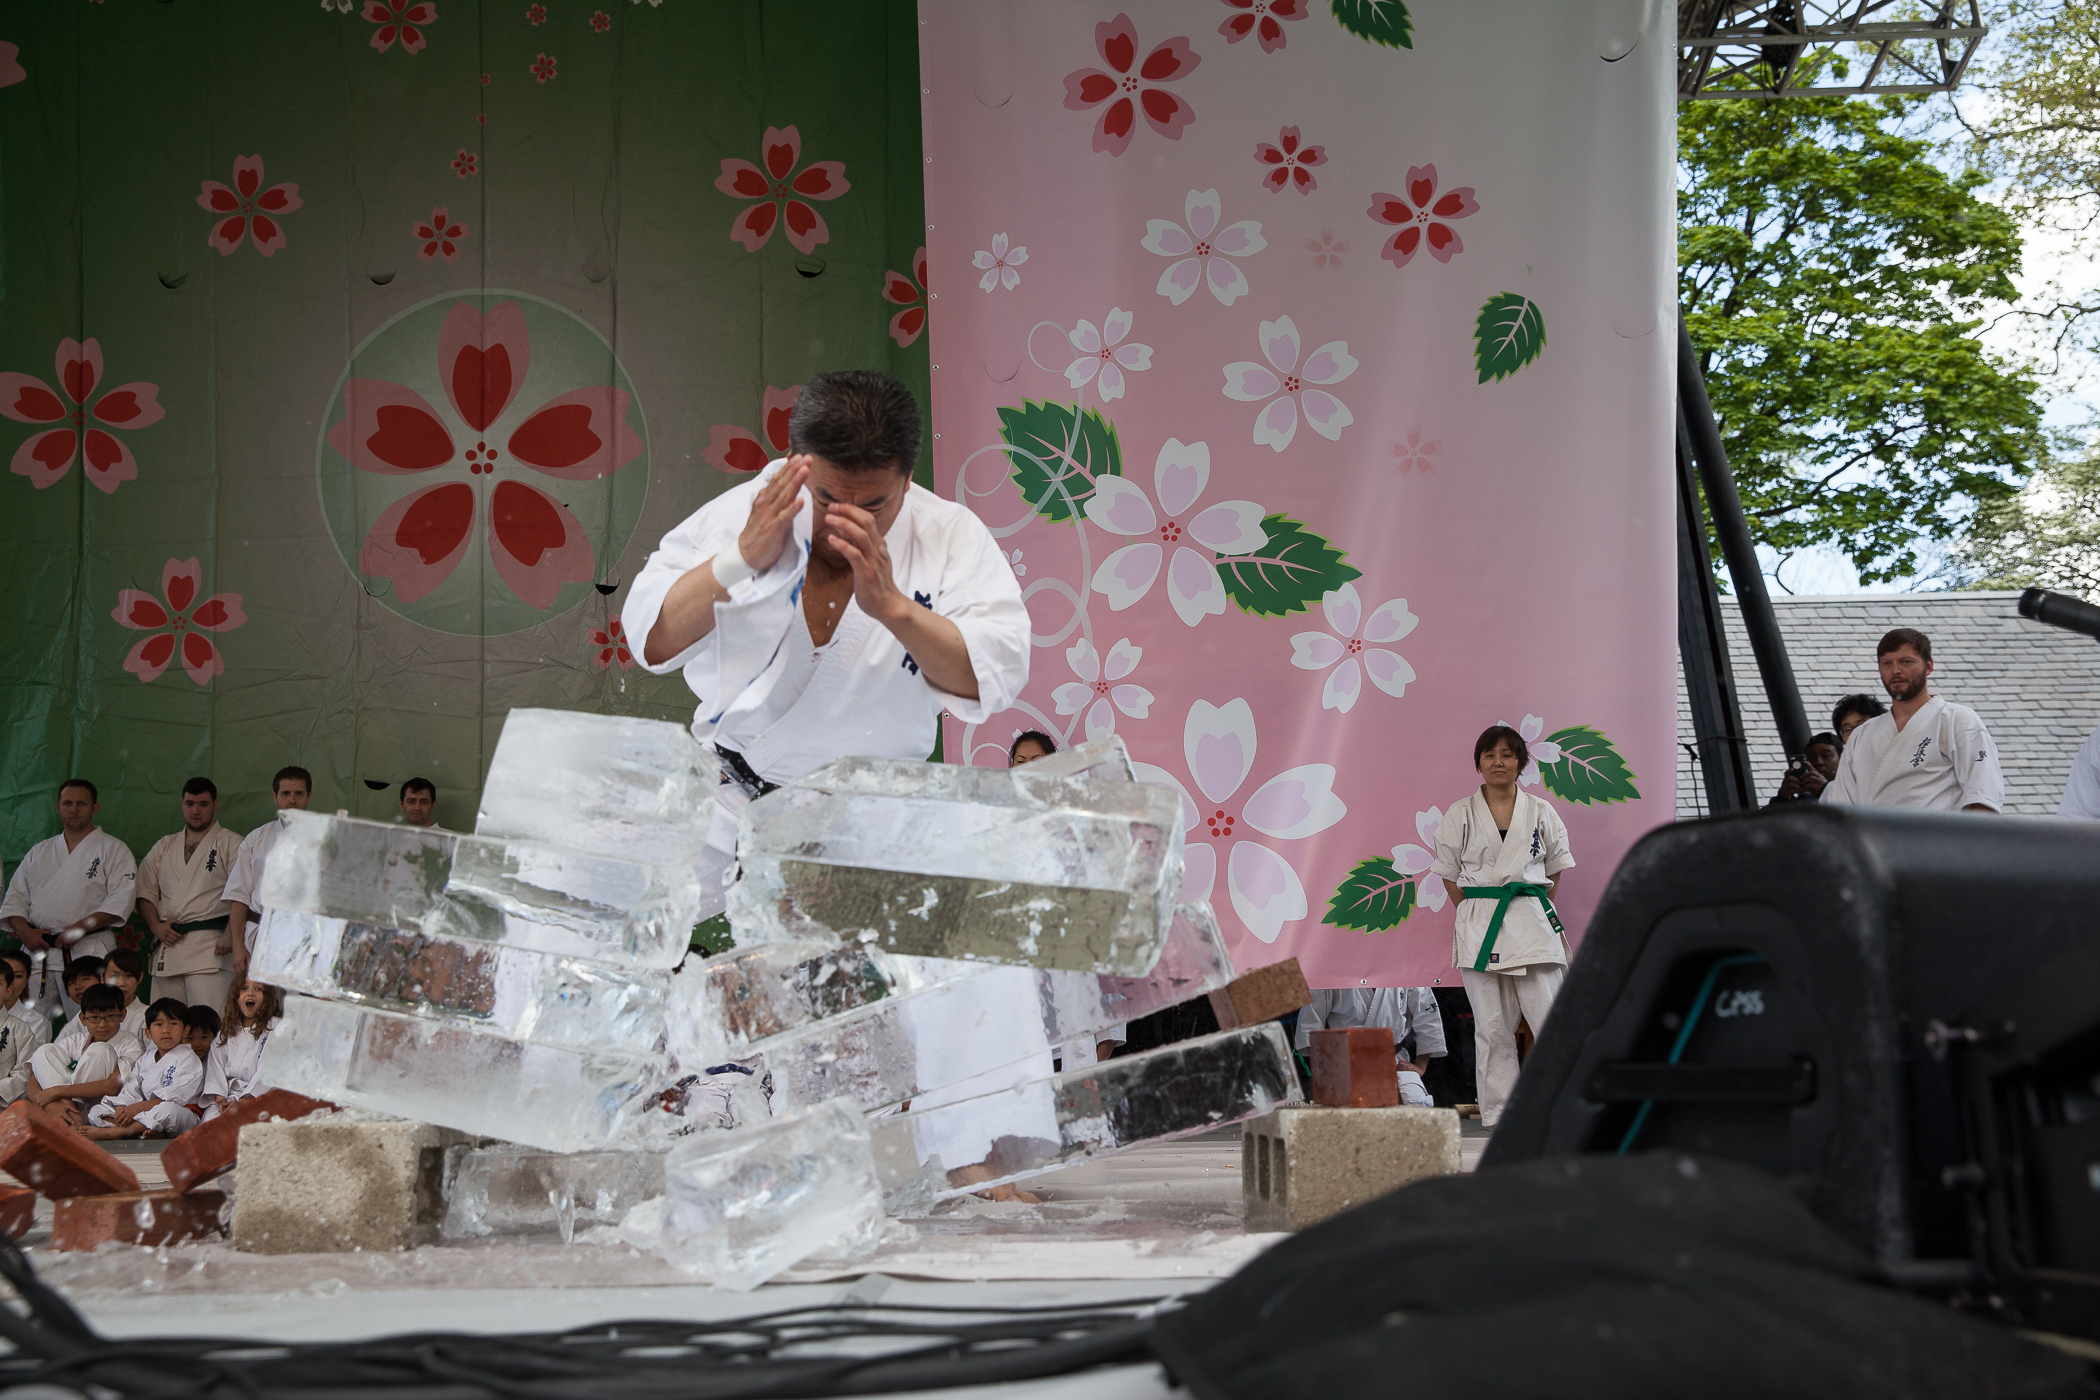 Japan_Day_2016_Mark Doyle-8737.jpg